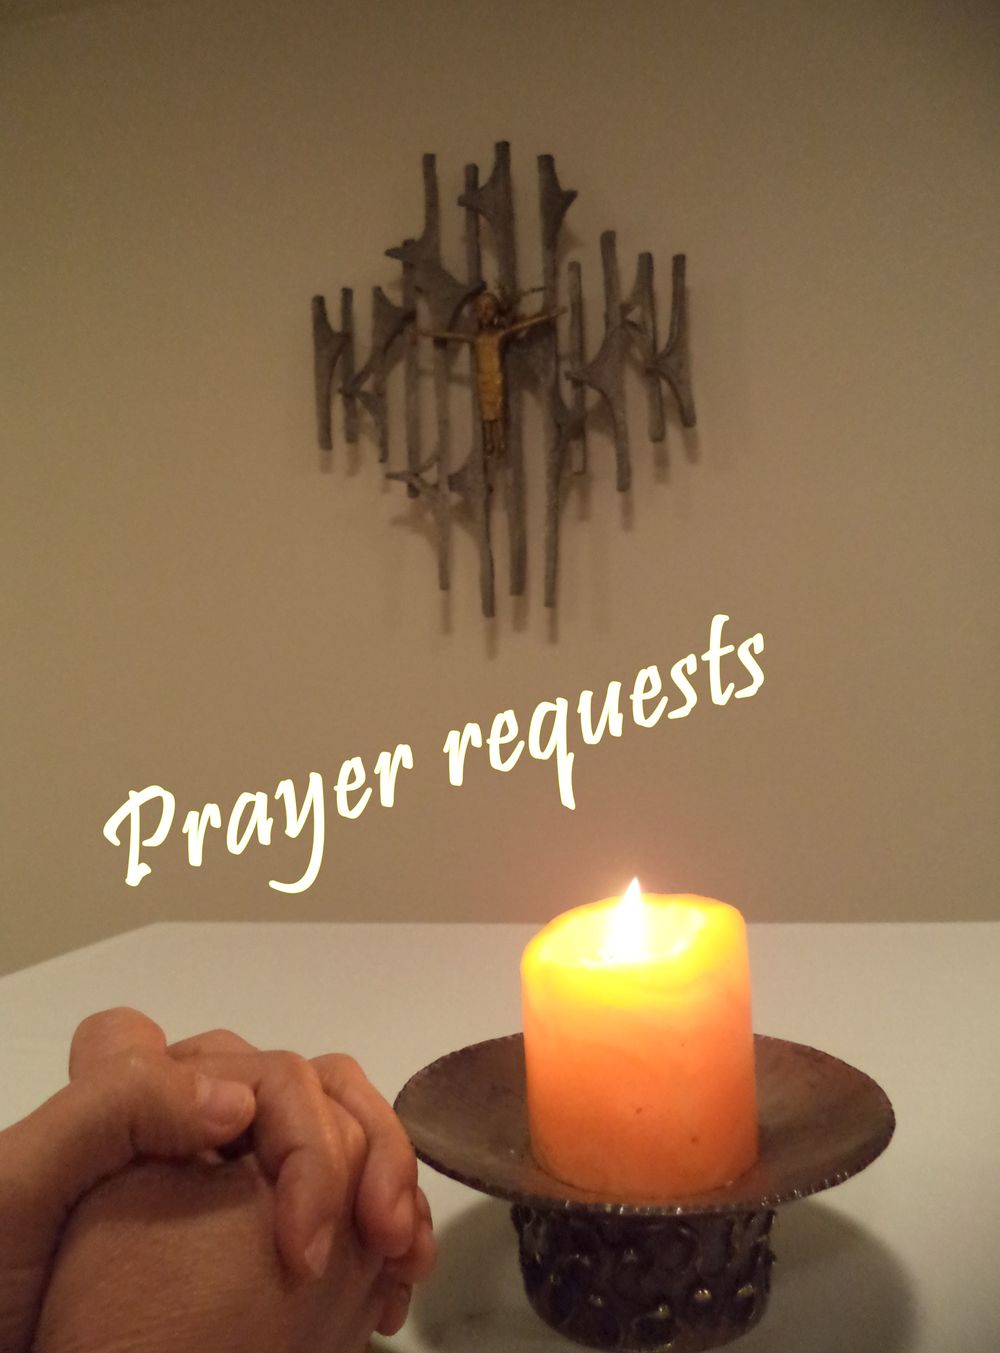 Prayer requests.